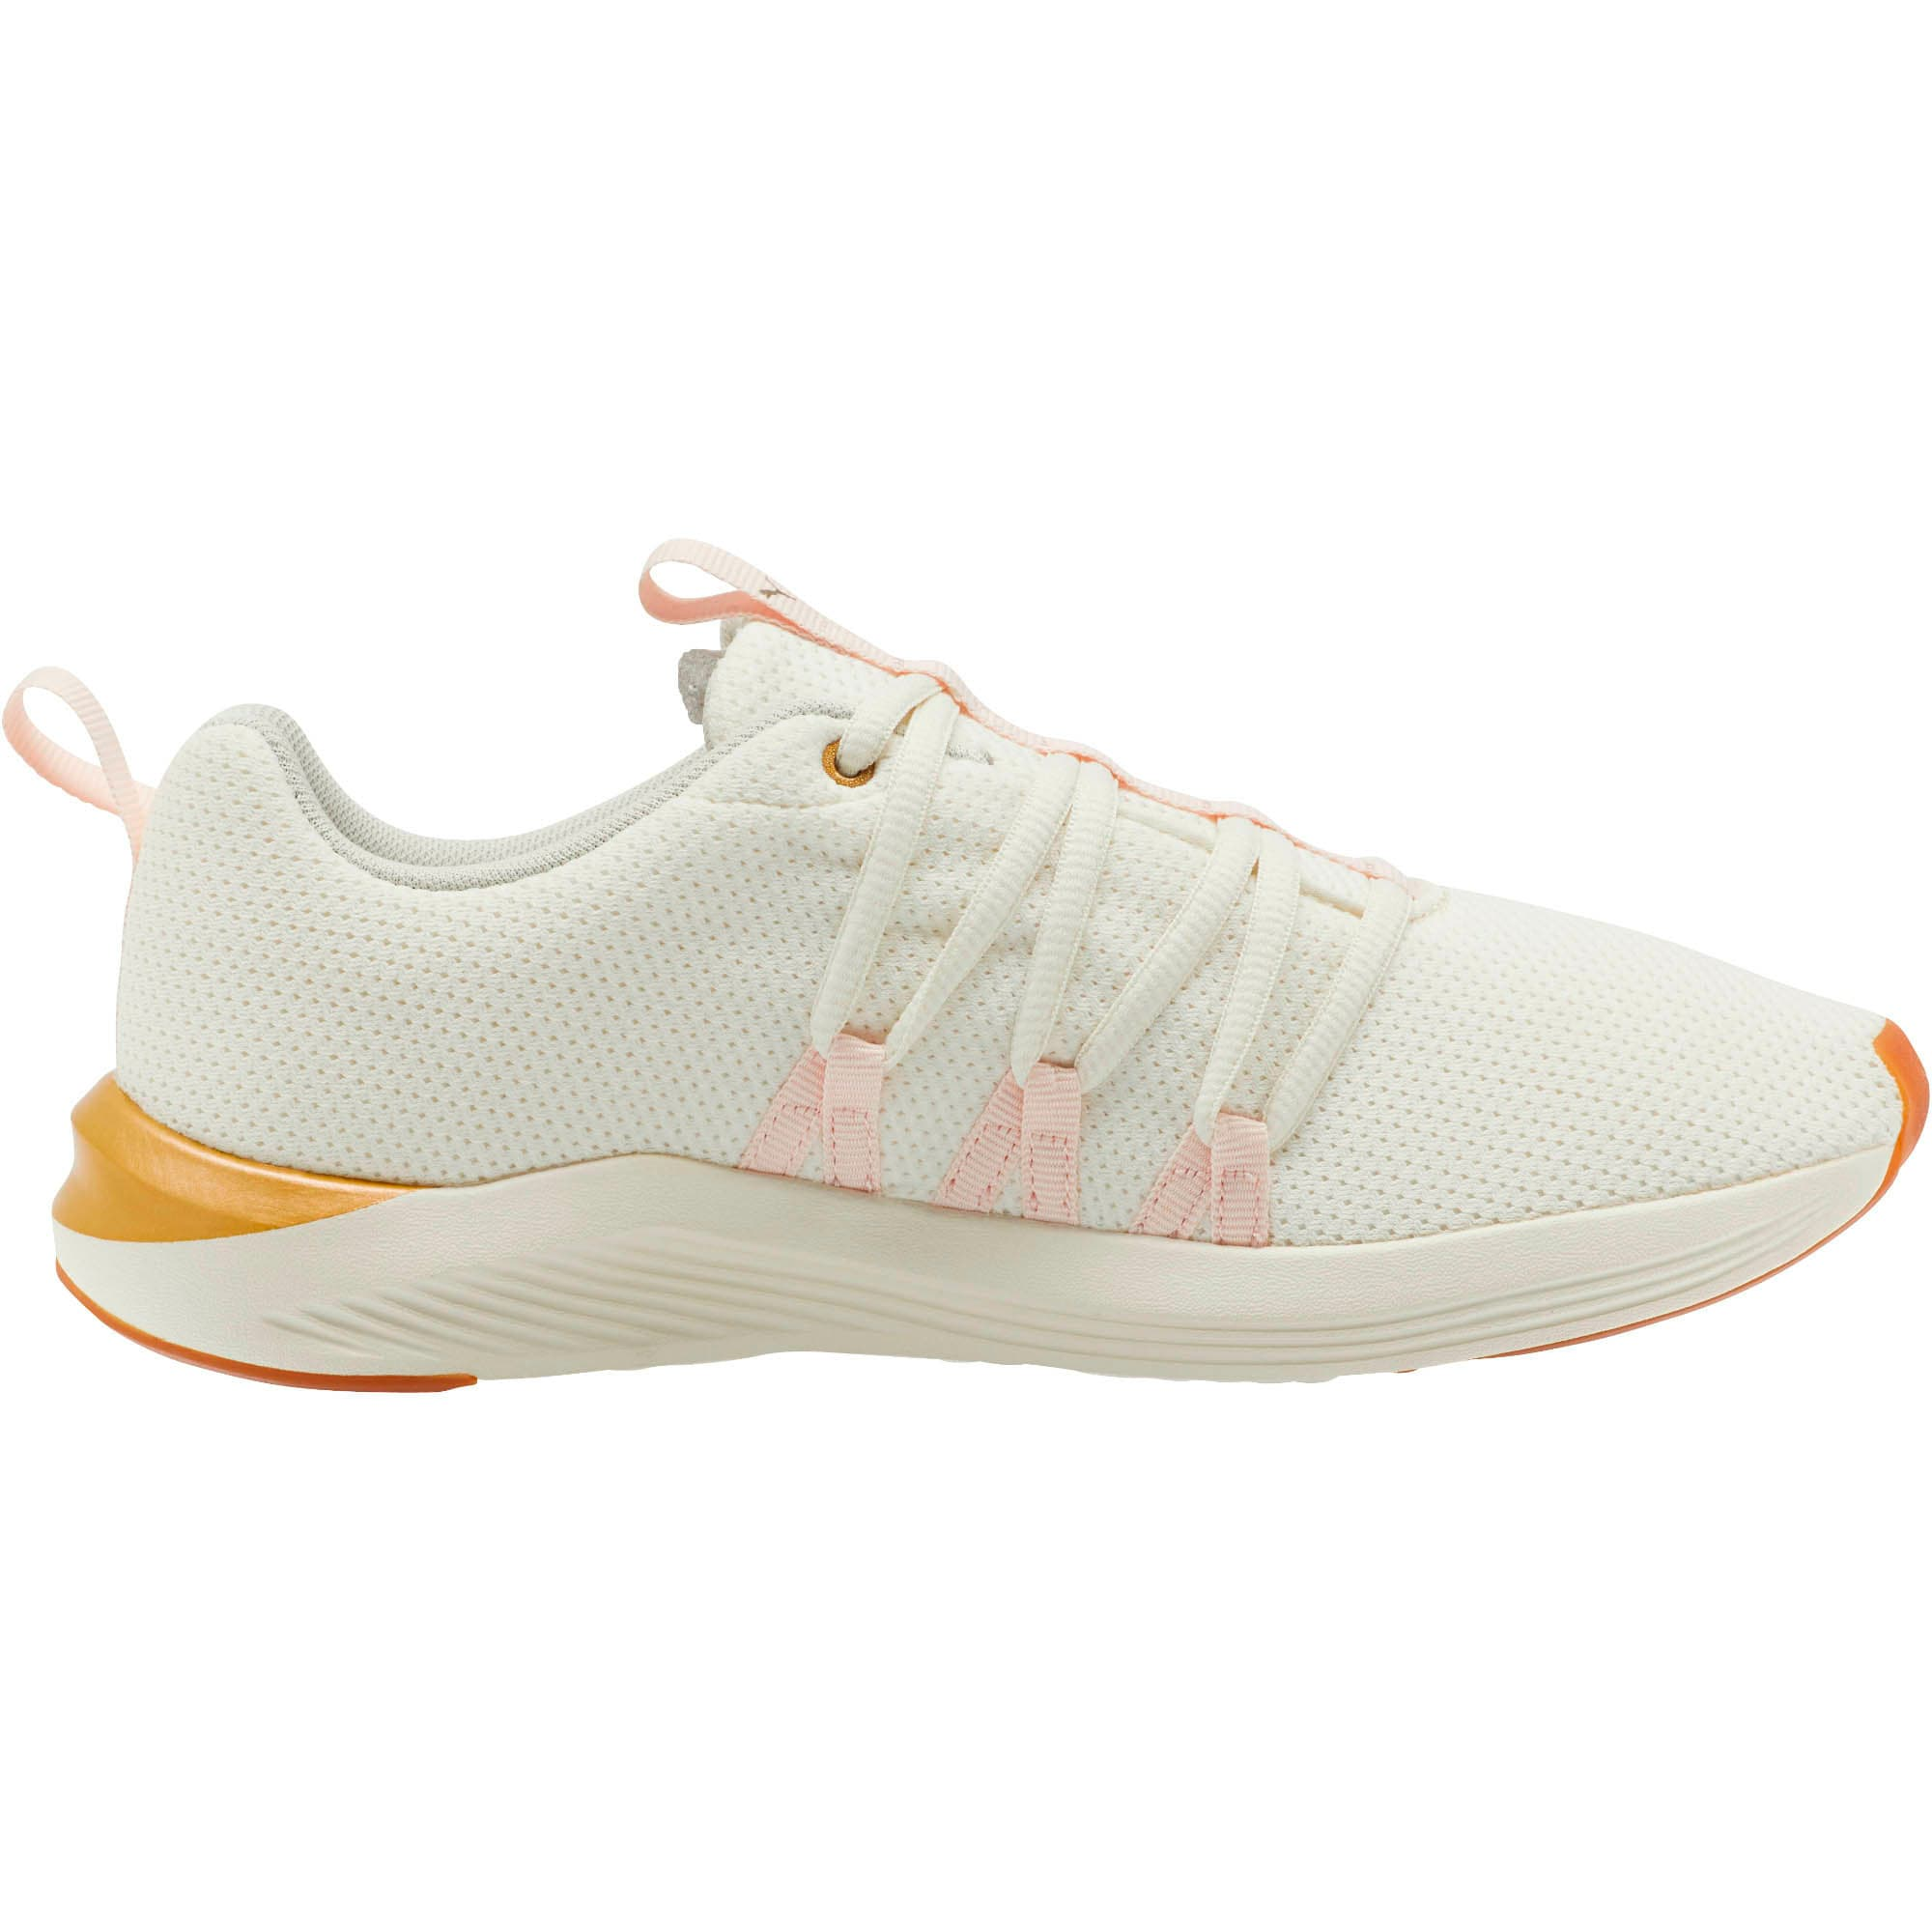 Zapatos de entrenamiento Prowl Alt Sweet para mujer, Whisper White-Barely Pink, grande